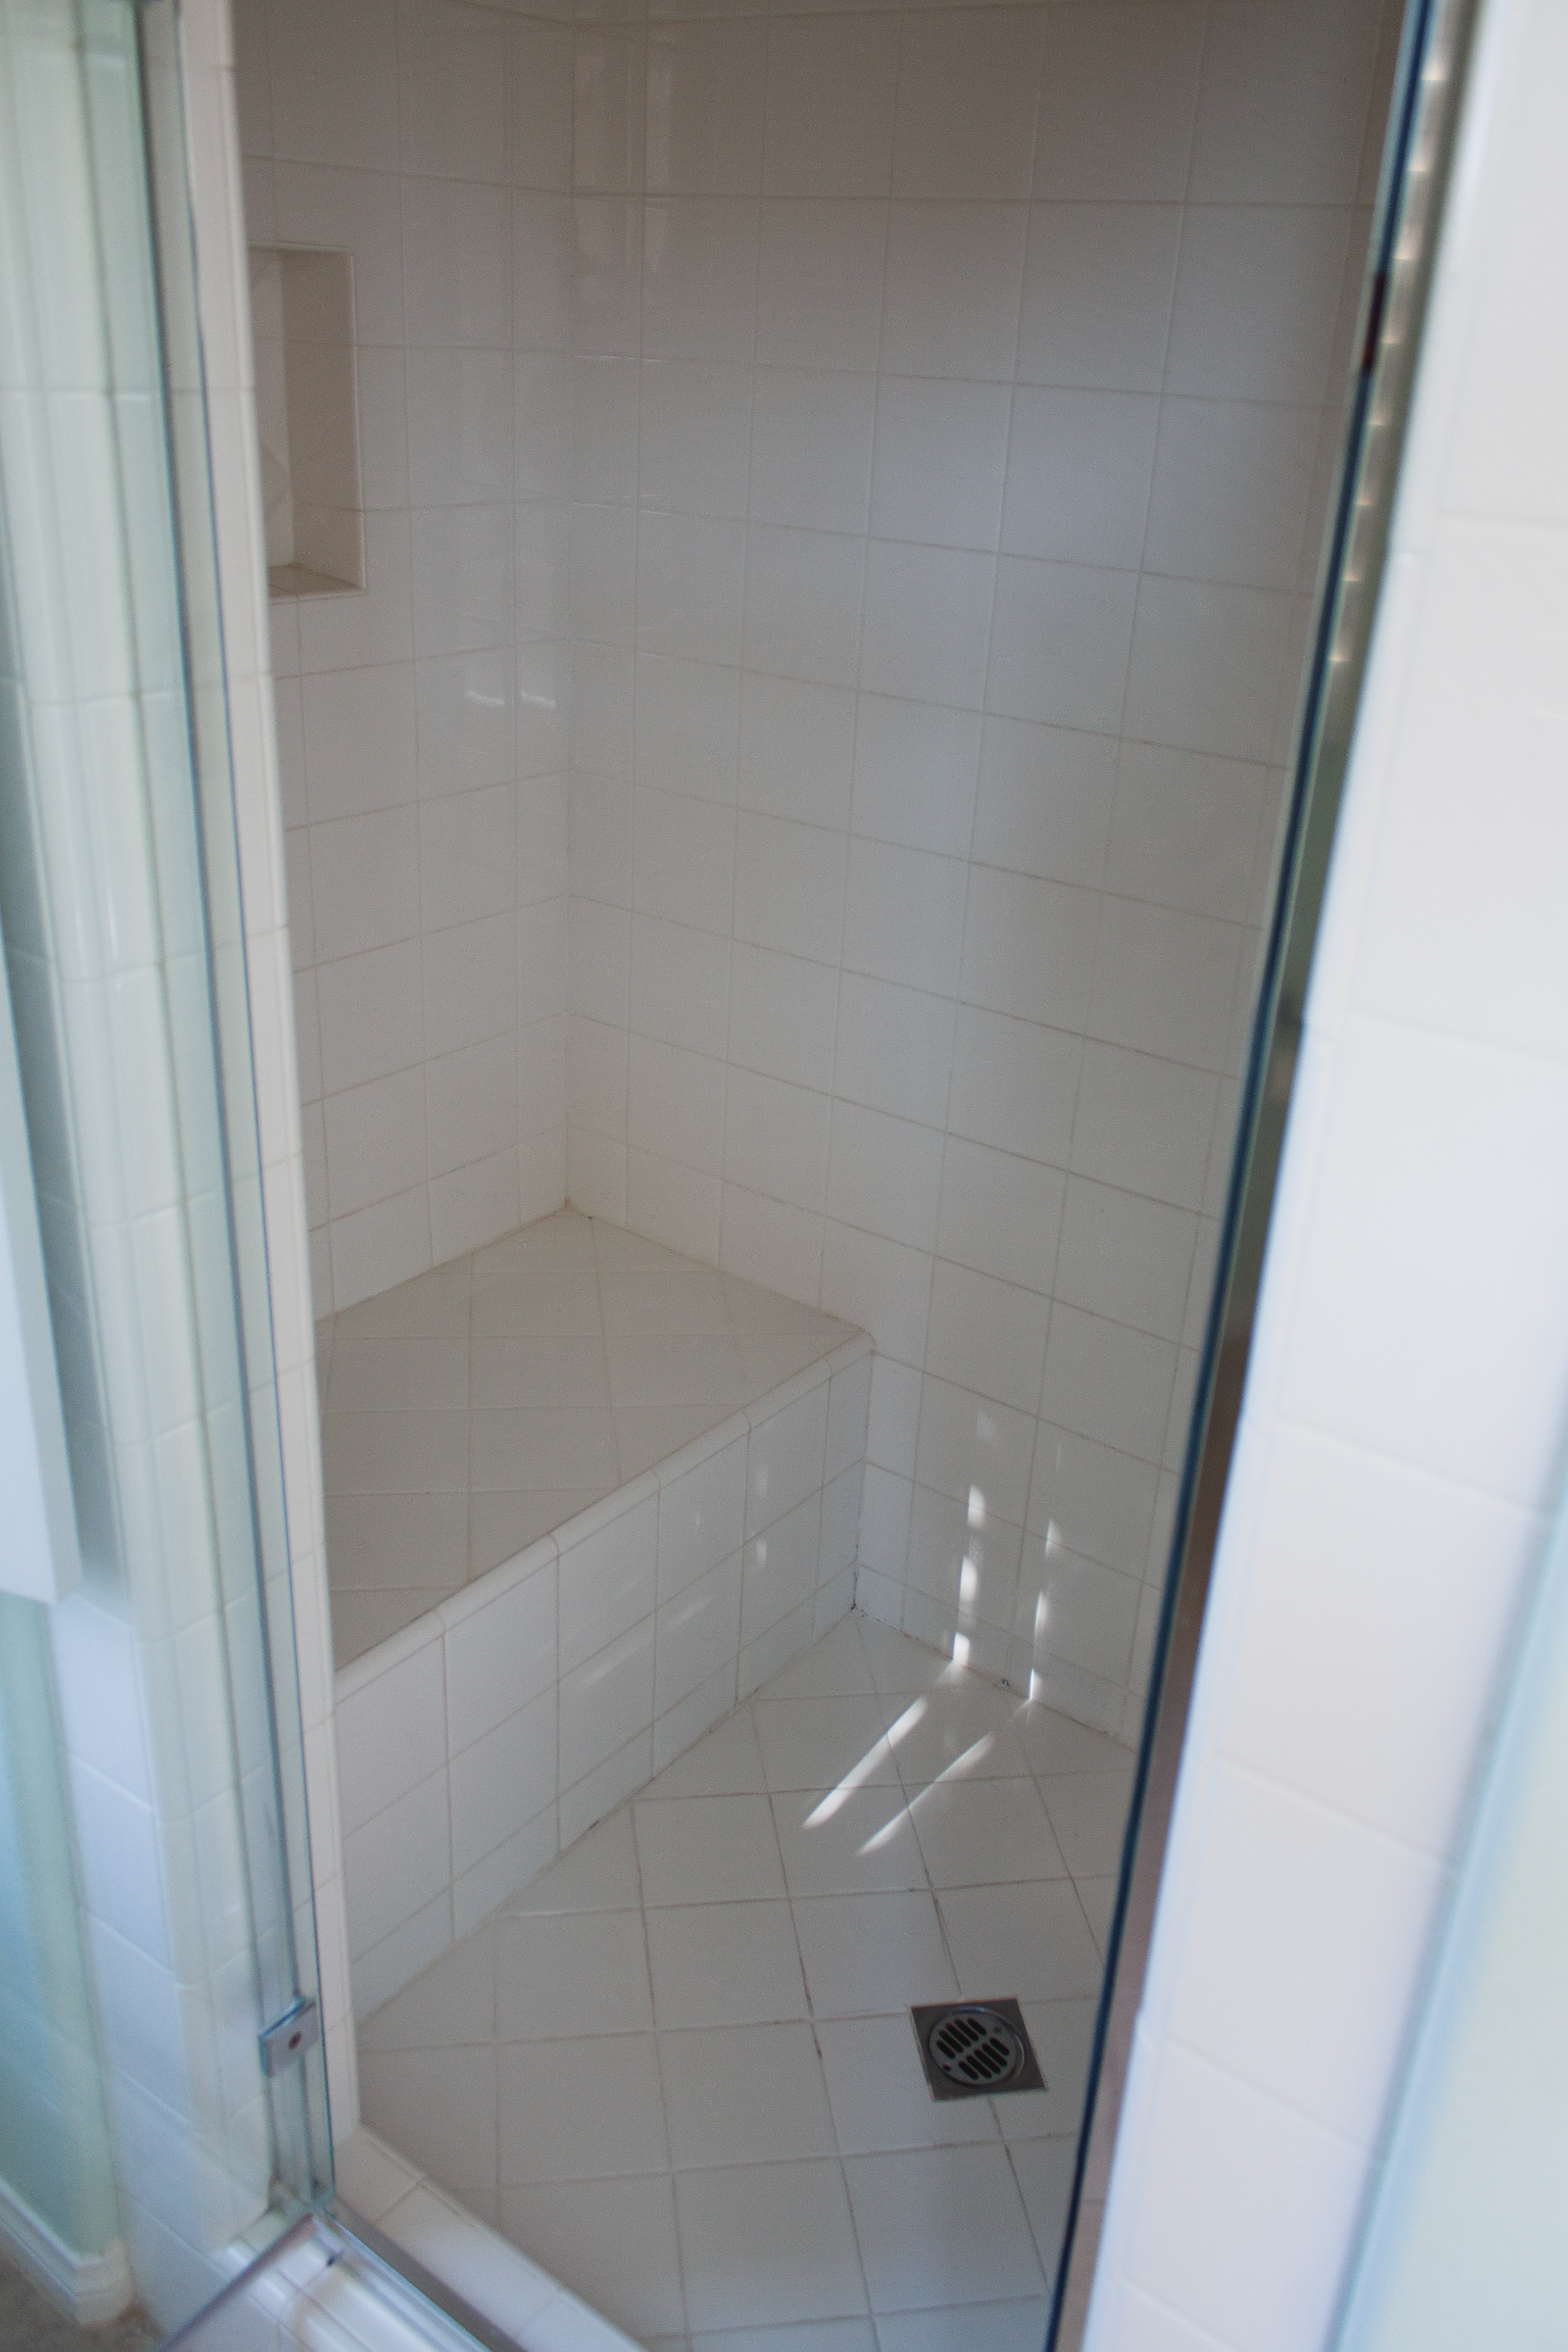 3rd Shower near the Great Room